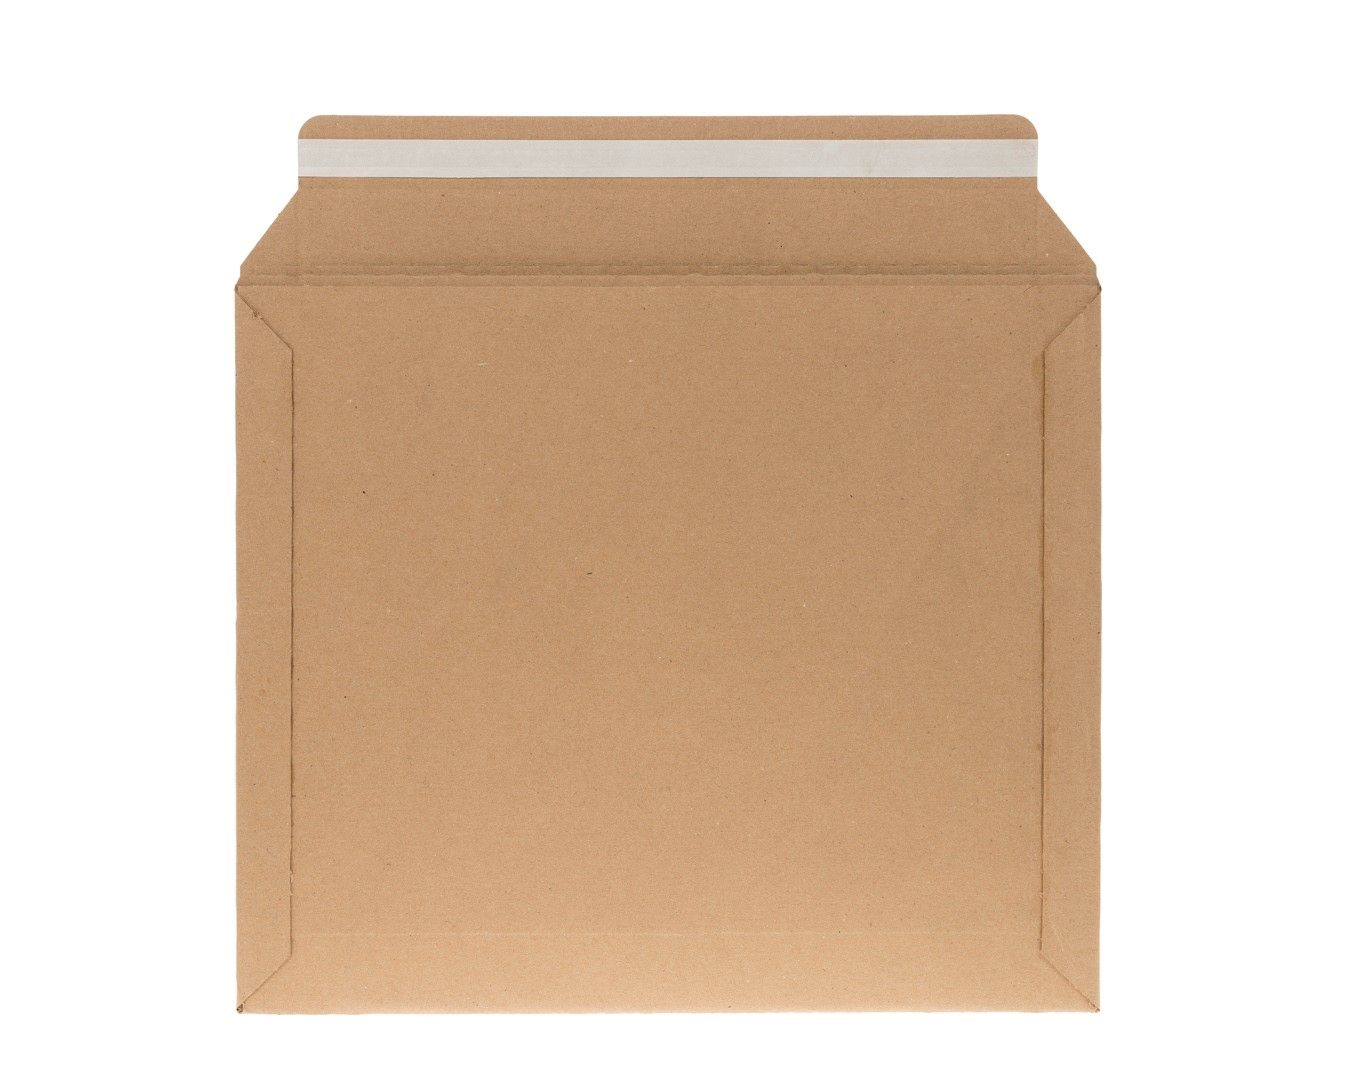 100% Recycled Cardboard Envelopes, Min. Order (Pack of 20 pieces)